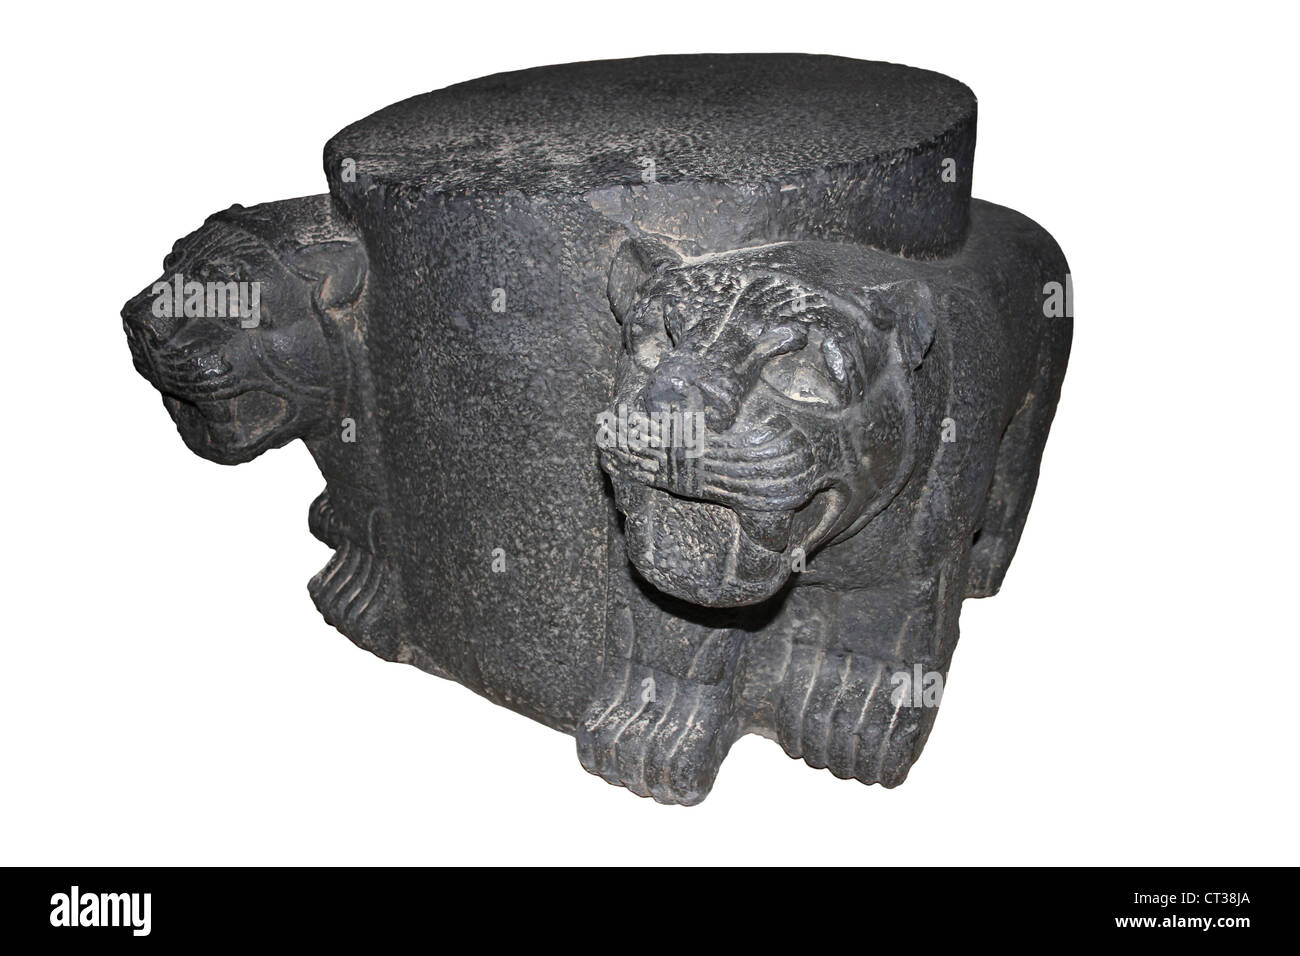 Cast Of Column Base With Two Lions Originally Used As A Ceremonial Entrance To A Temple In The Hittite City Of Carchemish - Stock Image